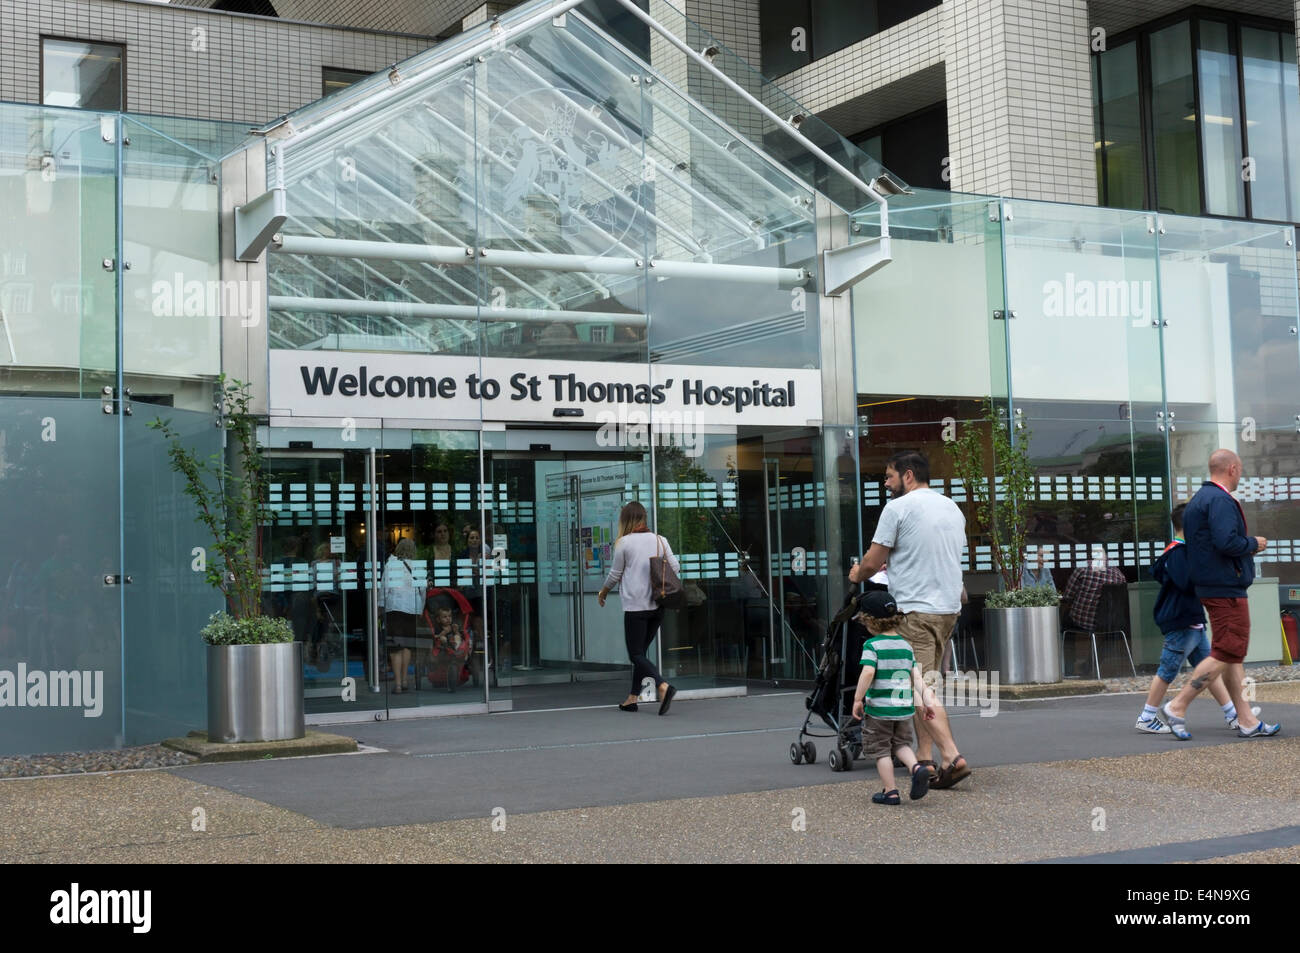 Entrance to St Thomas' Hospital at Waterloo, London. - Stock Image